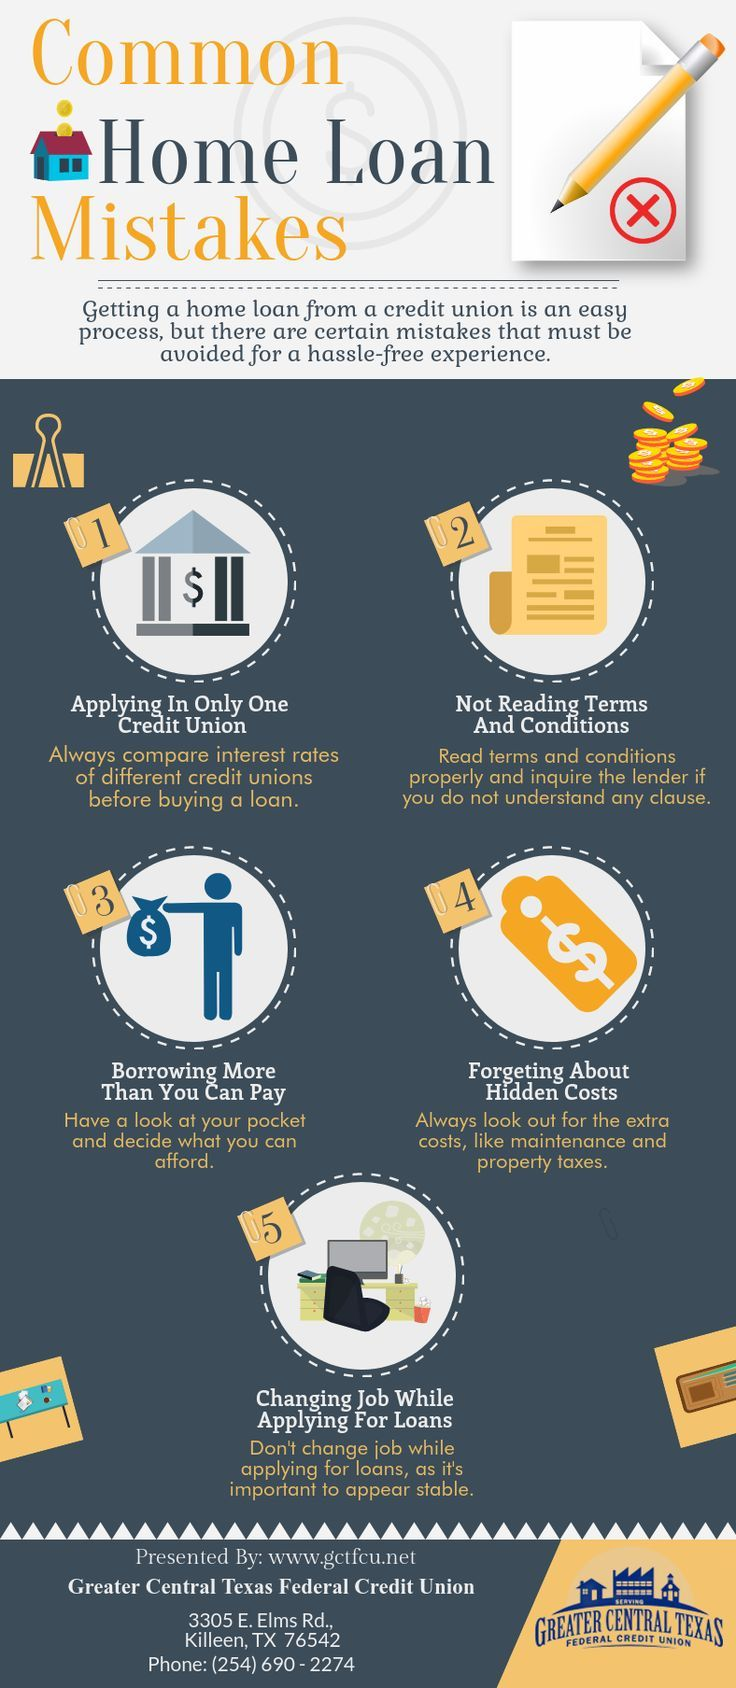 How Long To Get A Loan From Credit Union